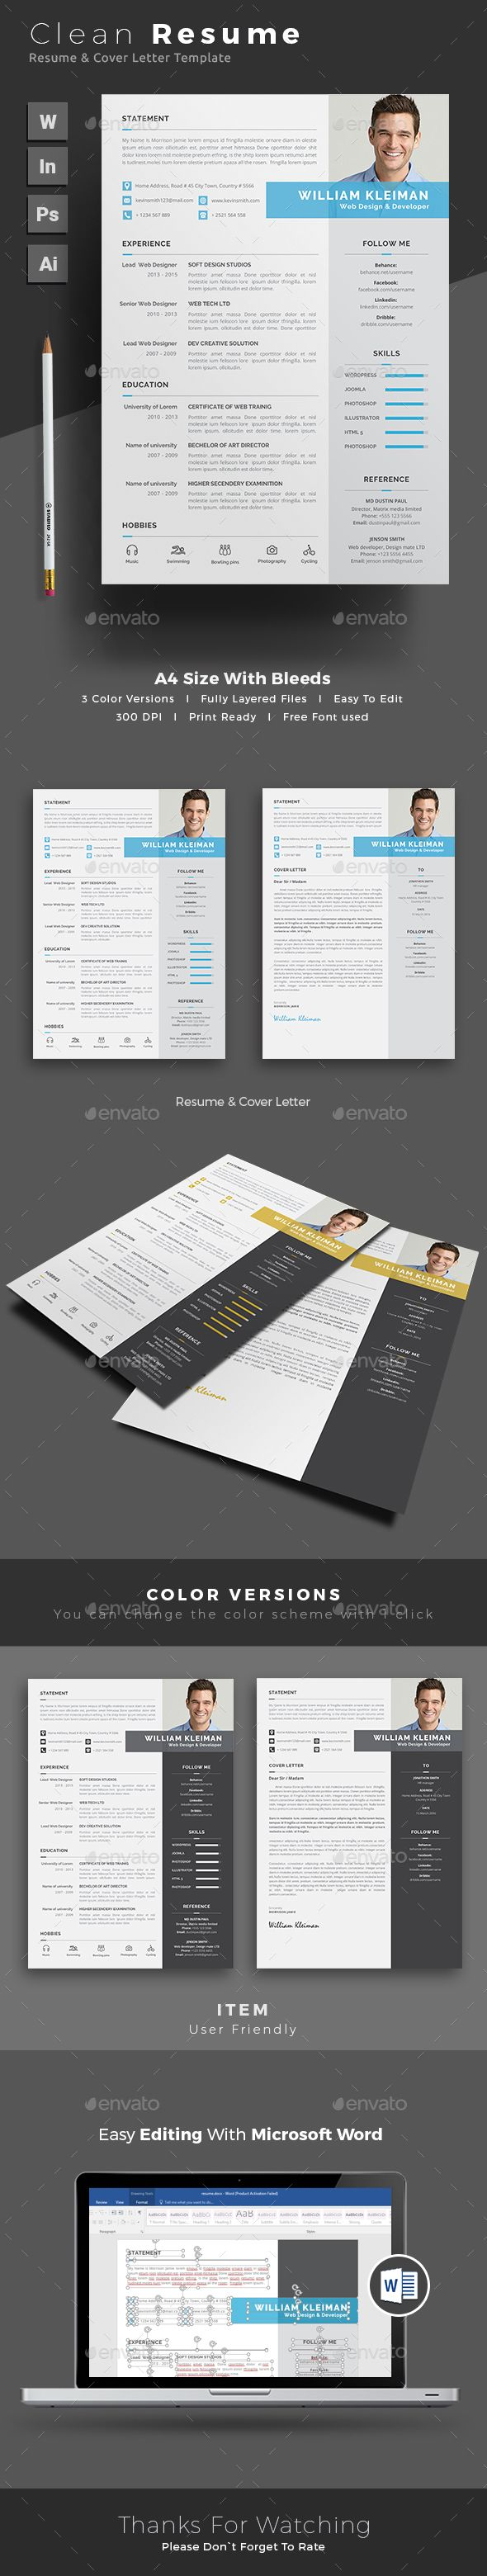 resume template psd  indesign indd  ai illustrator  ms word